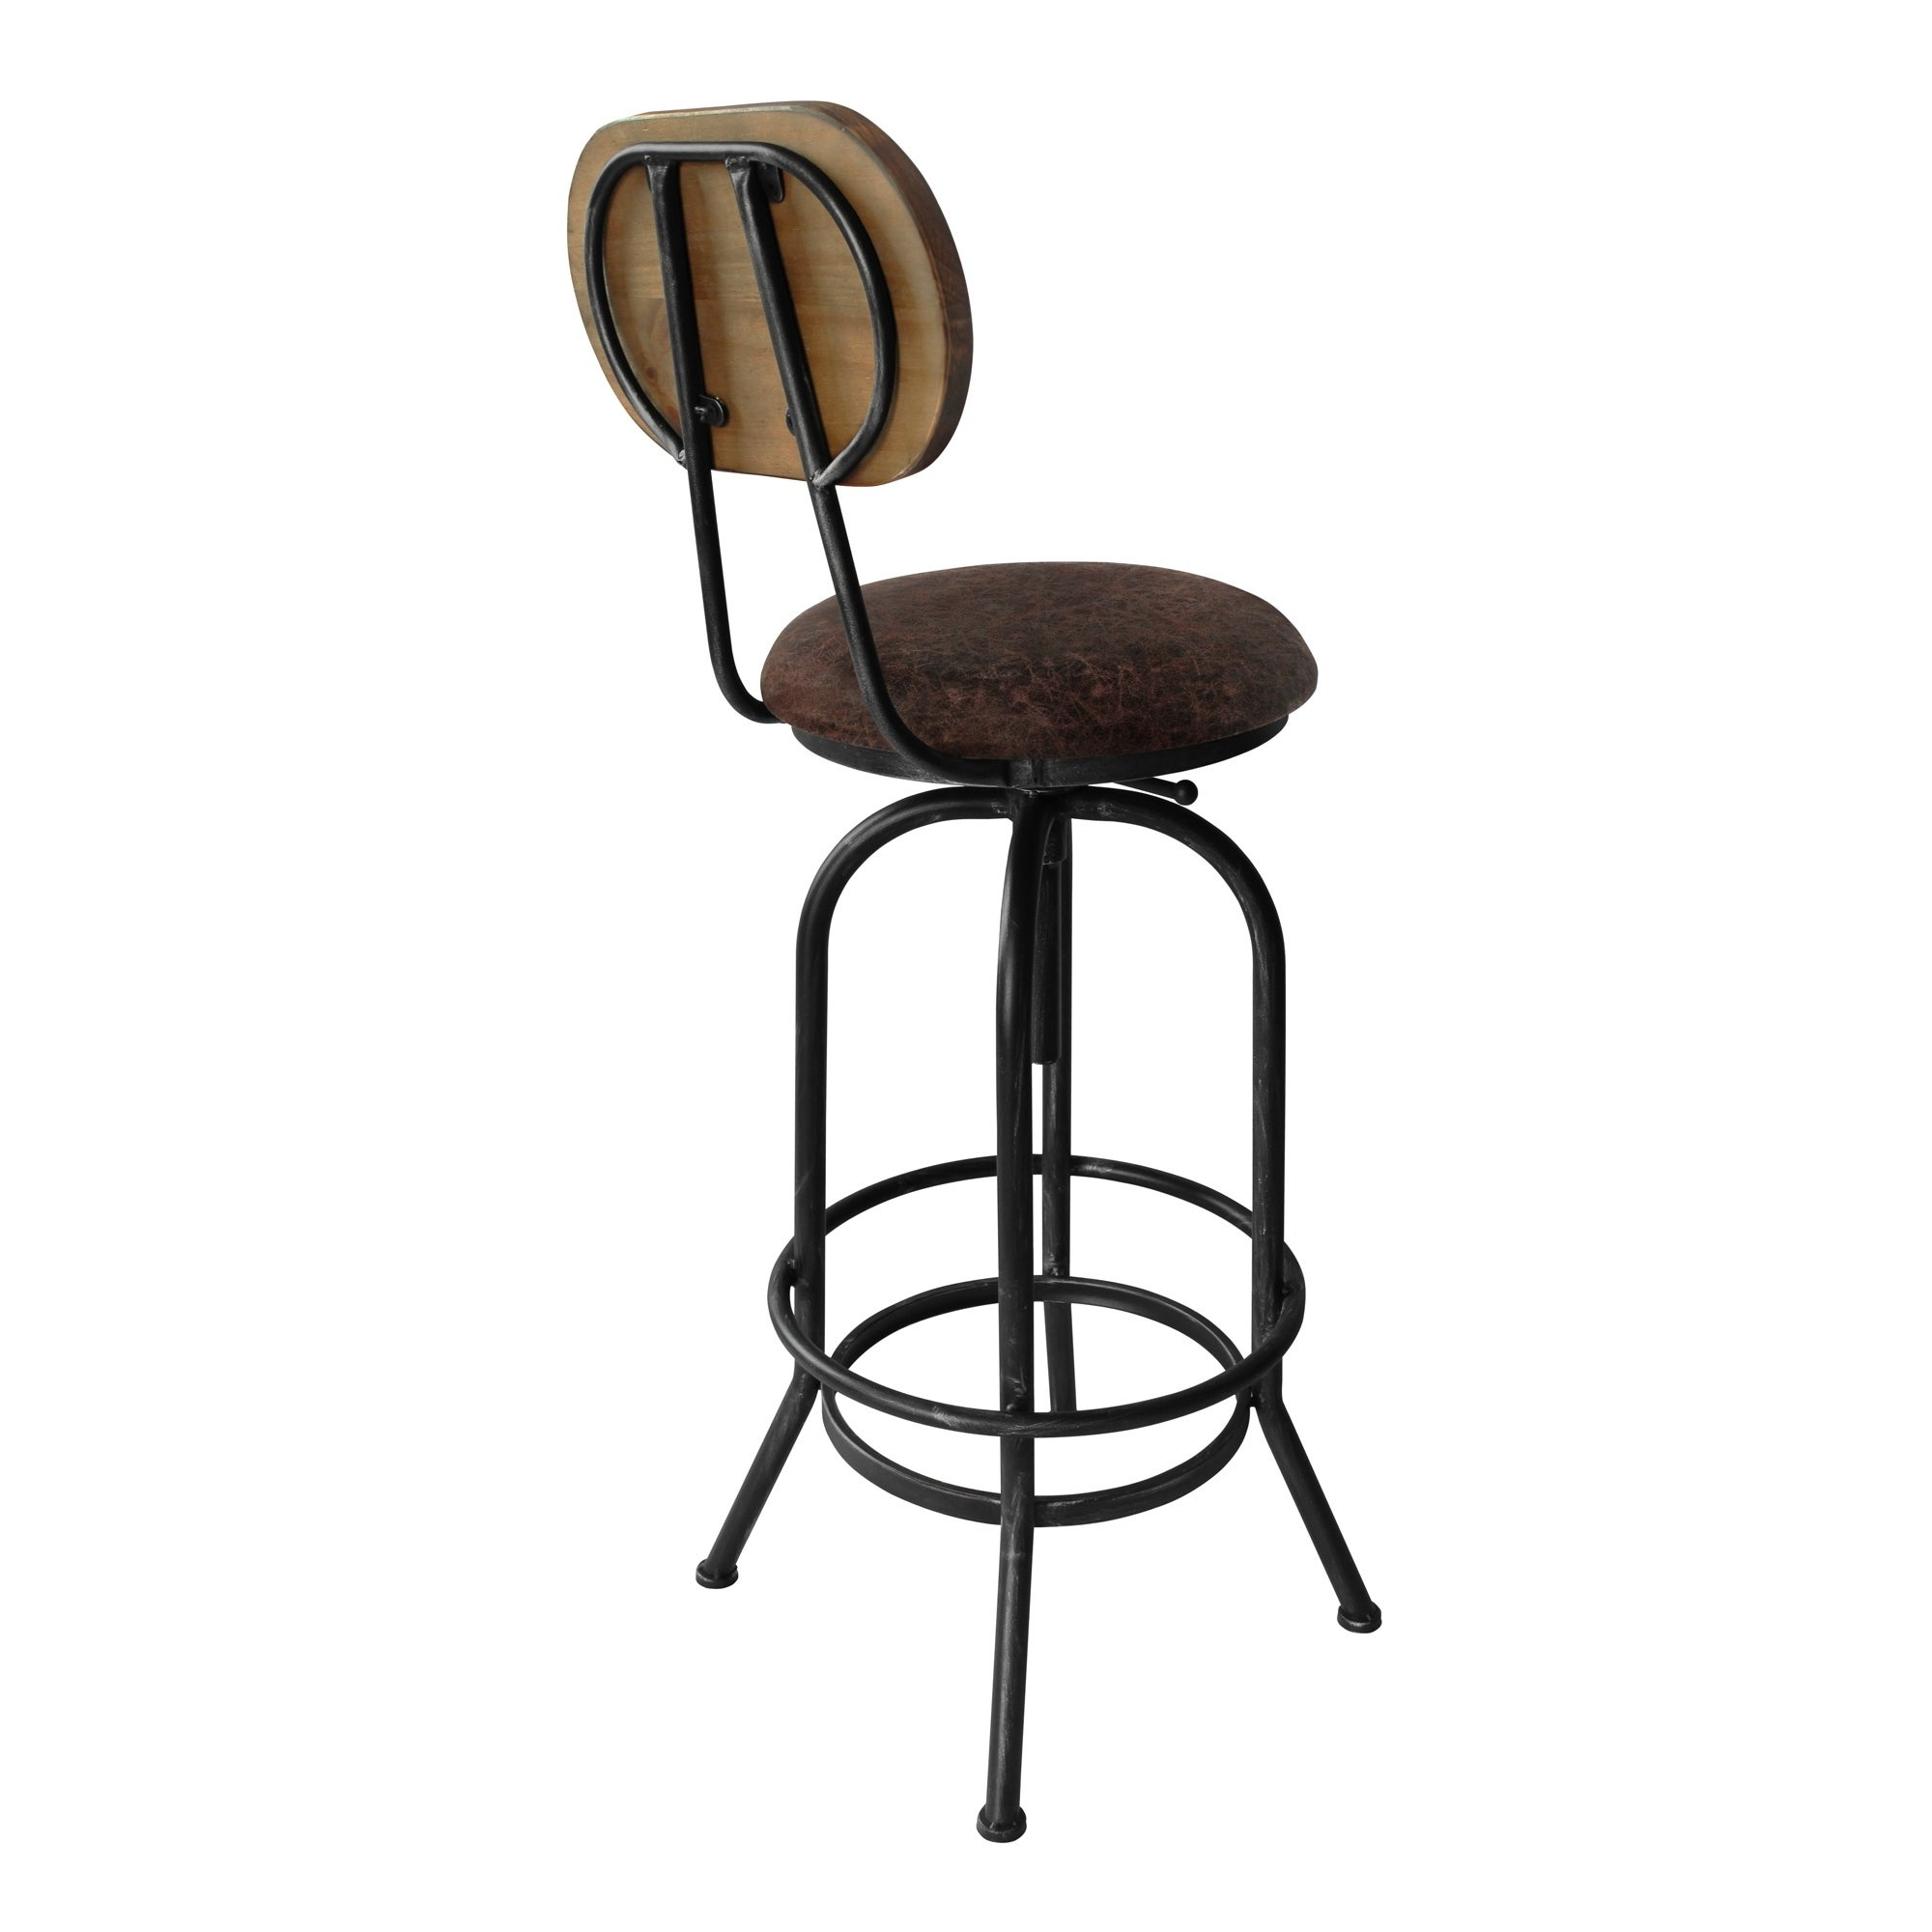 silver brushed metal chair woven. Adele Industrial Adjustable Barstool In Silver Brushed Grey Metal With Brown Fabric Seat And Rustic Pine Wood Back - Free Shipping Today Overstock Chair Woven O